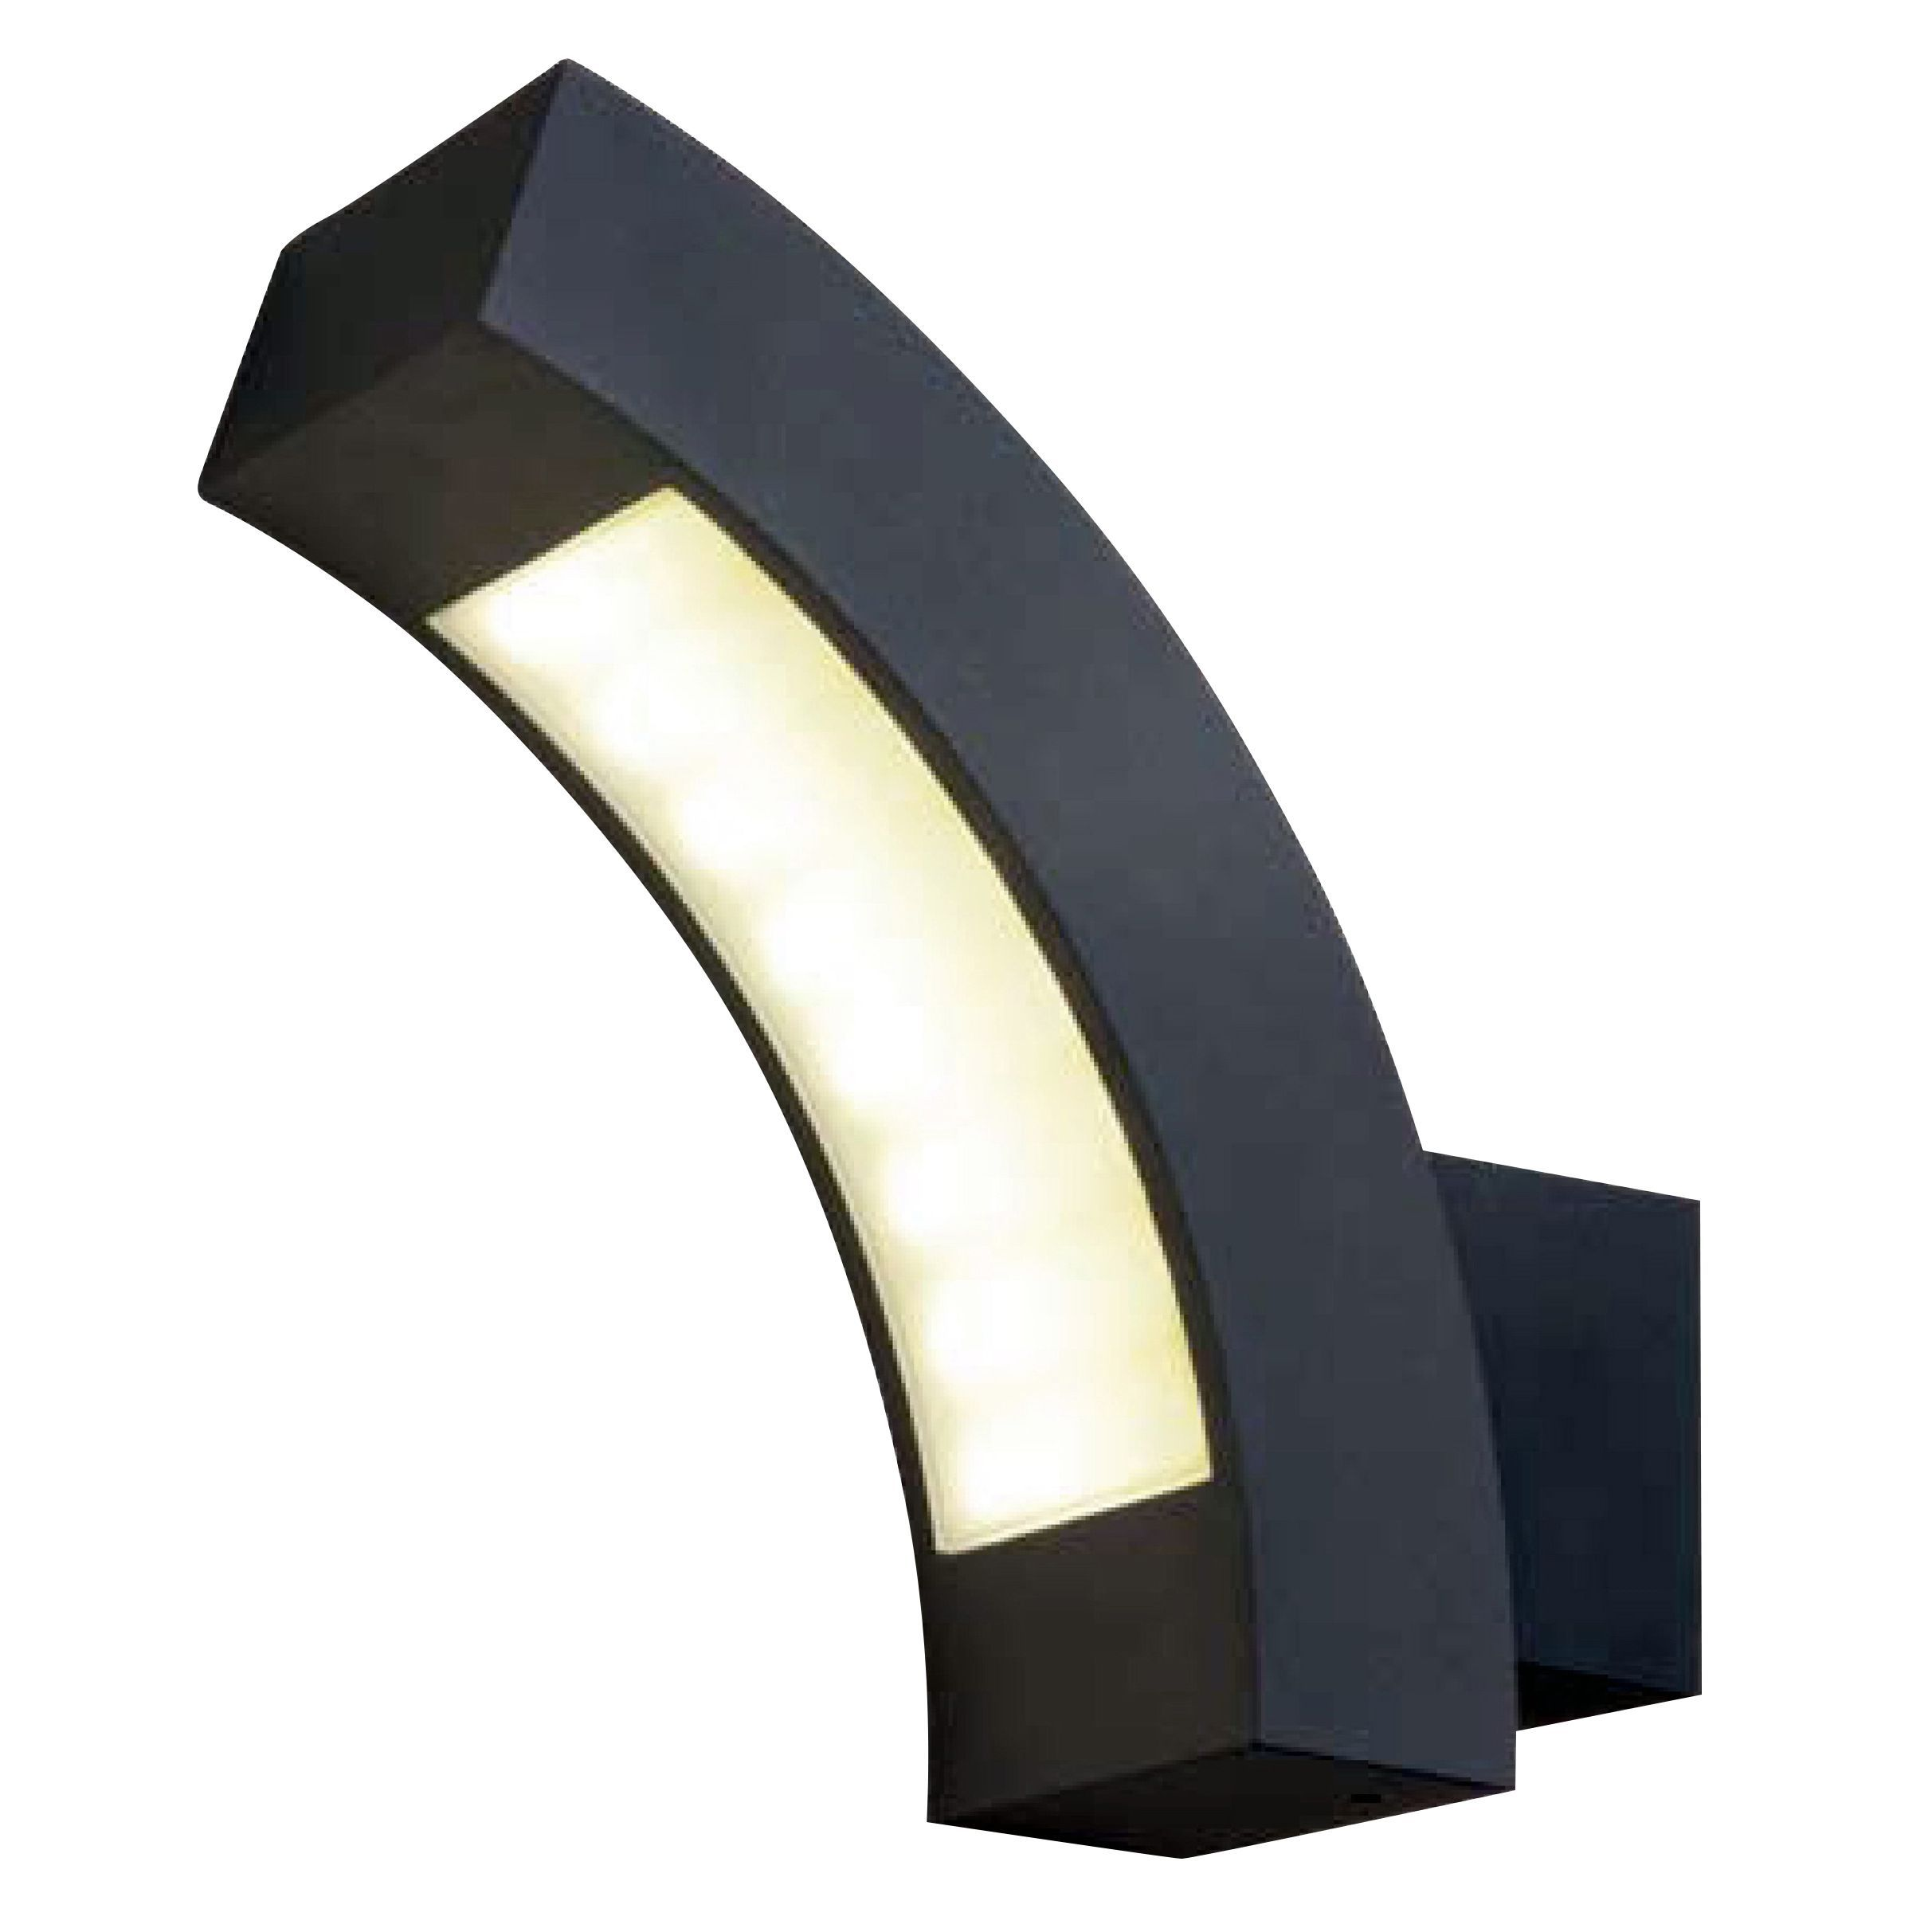 Blooma ross charcoal mains powered external wall light walls blooma ross charcoal external wall light departments diy at bq mozeypictures Image collections